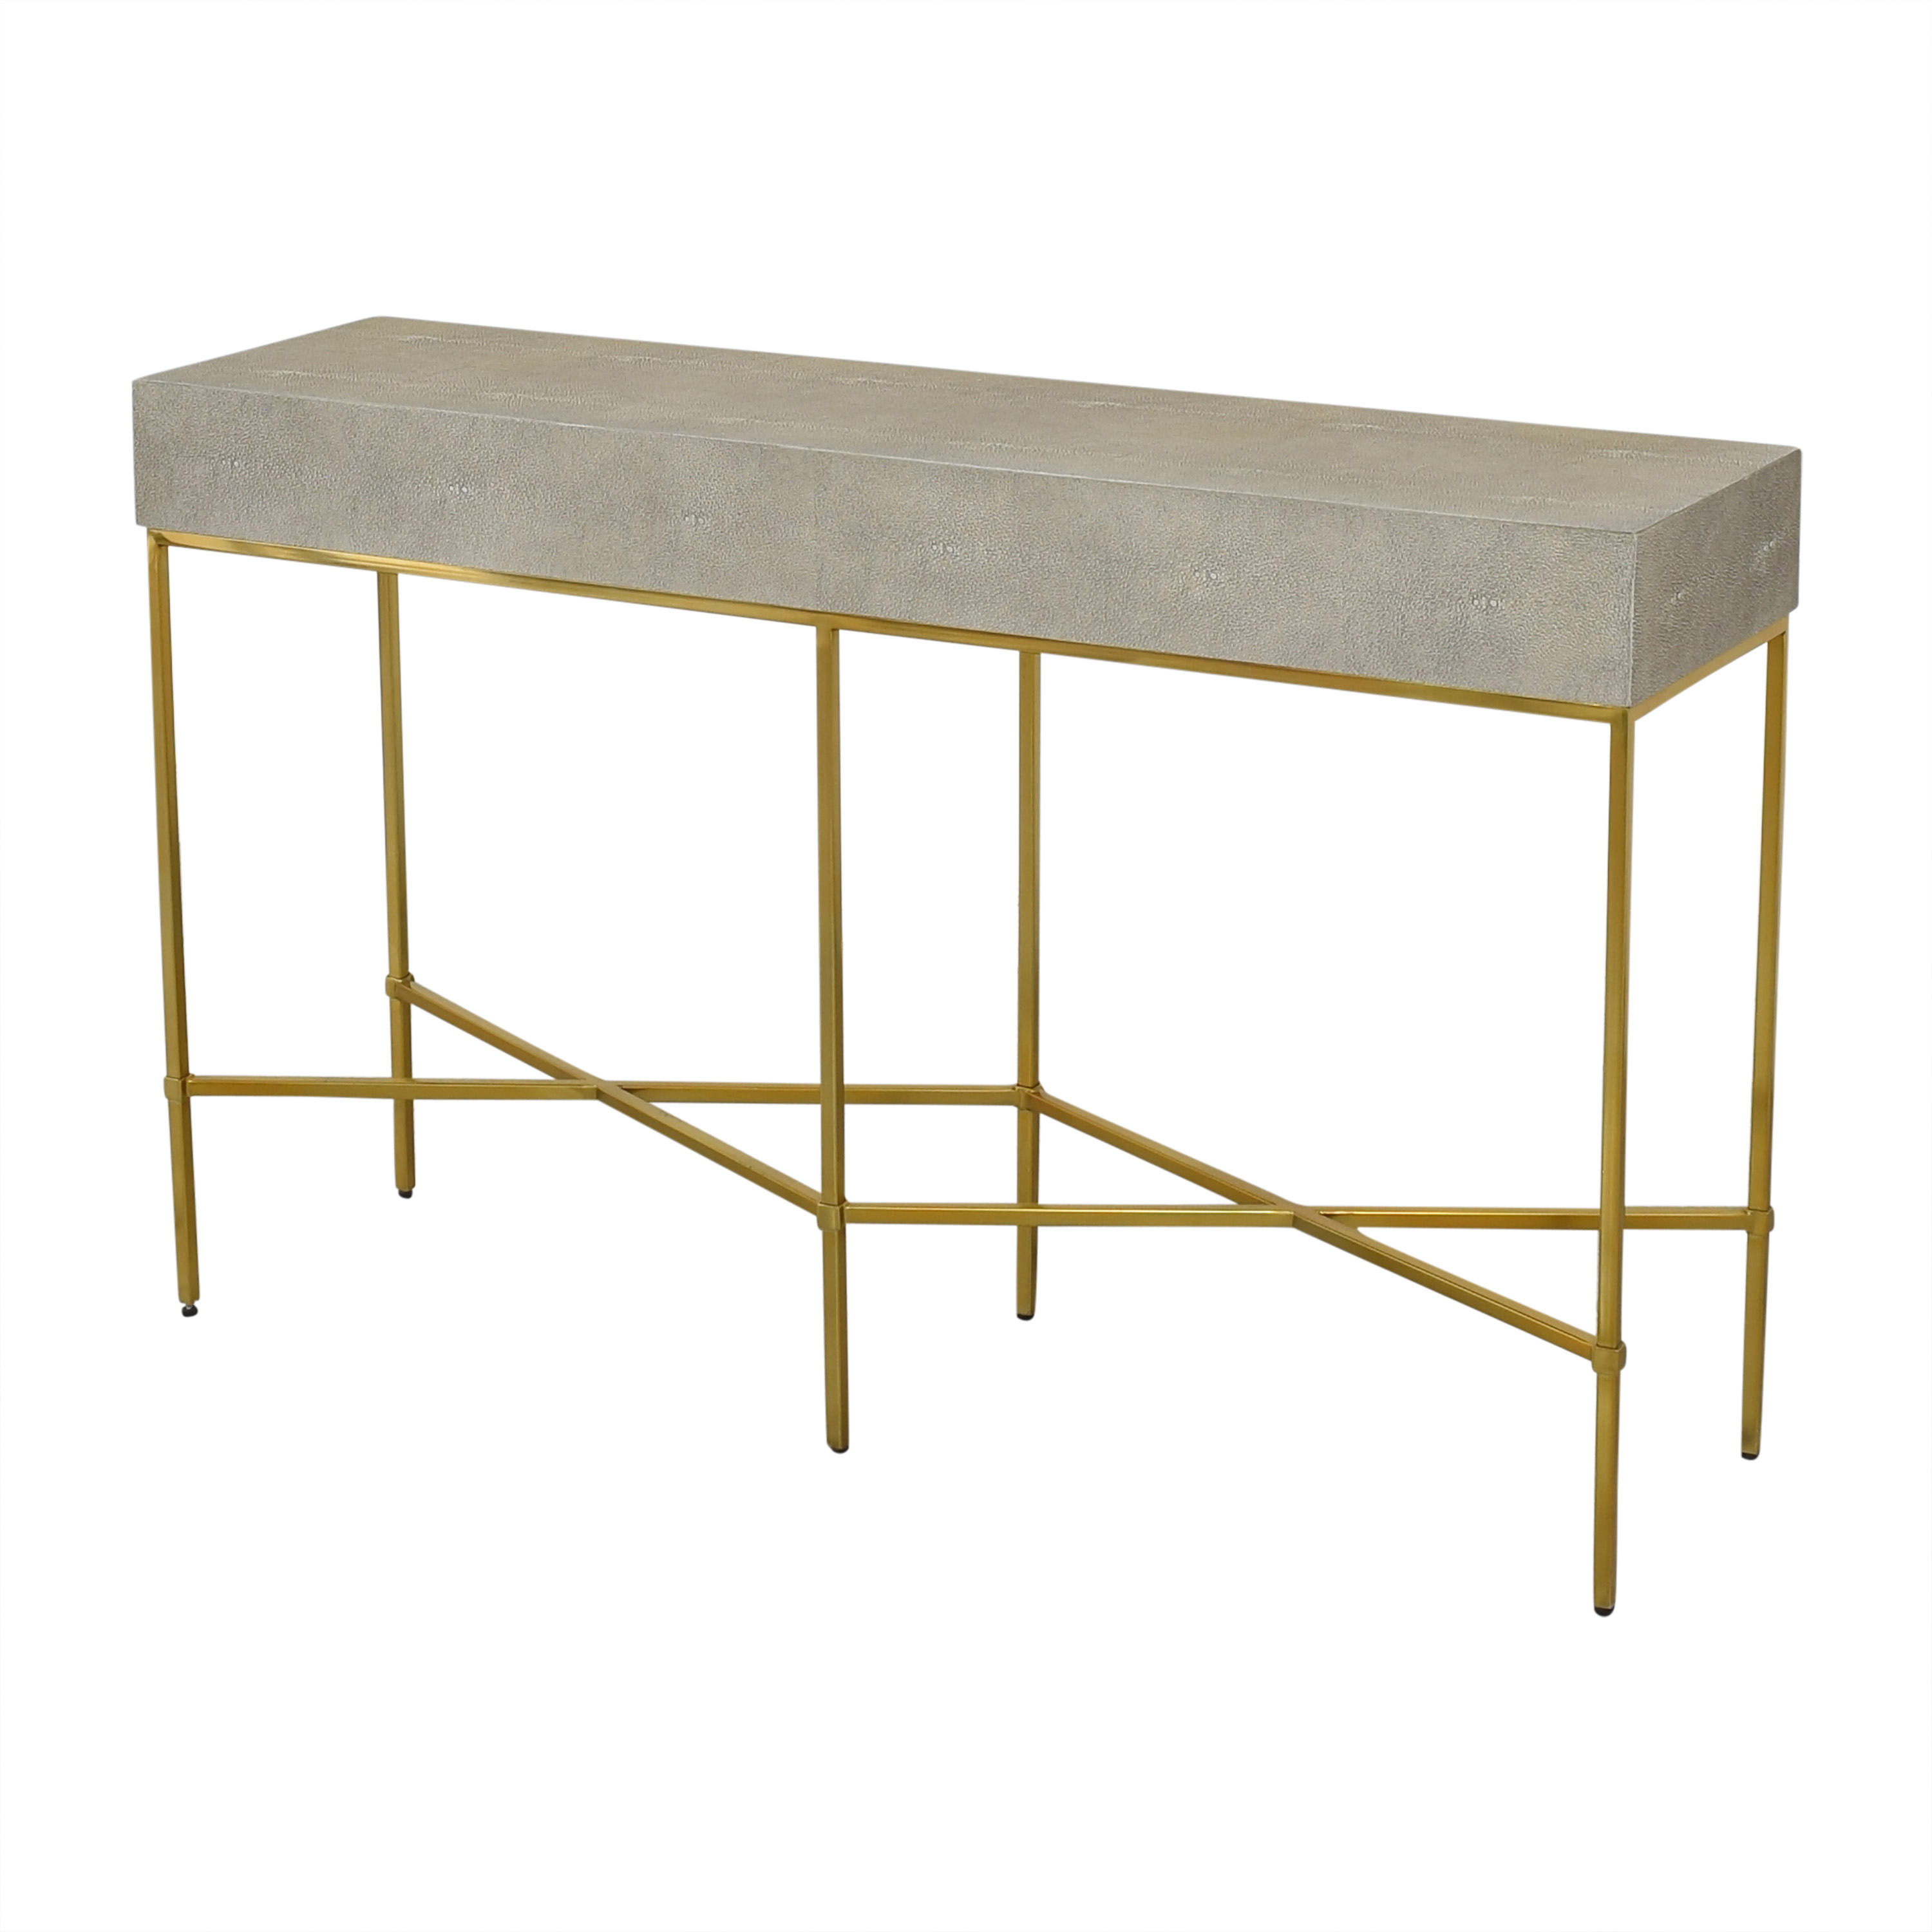 Williams Sonoma Modern Console Table / Tables